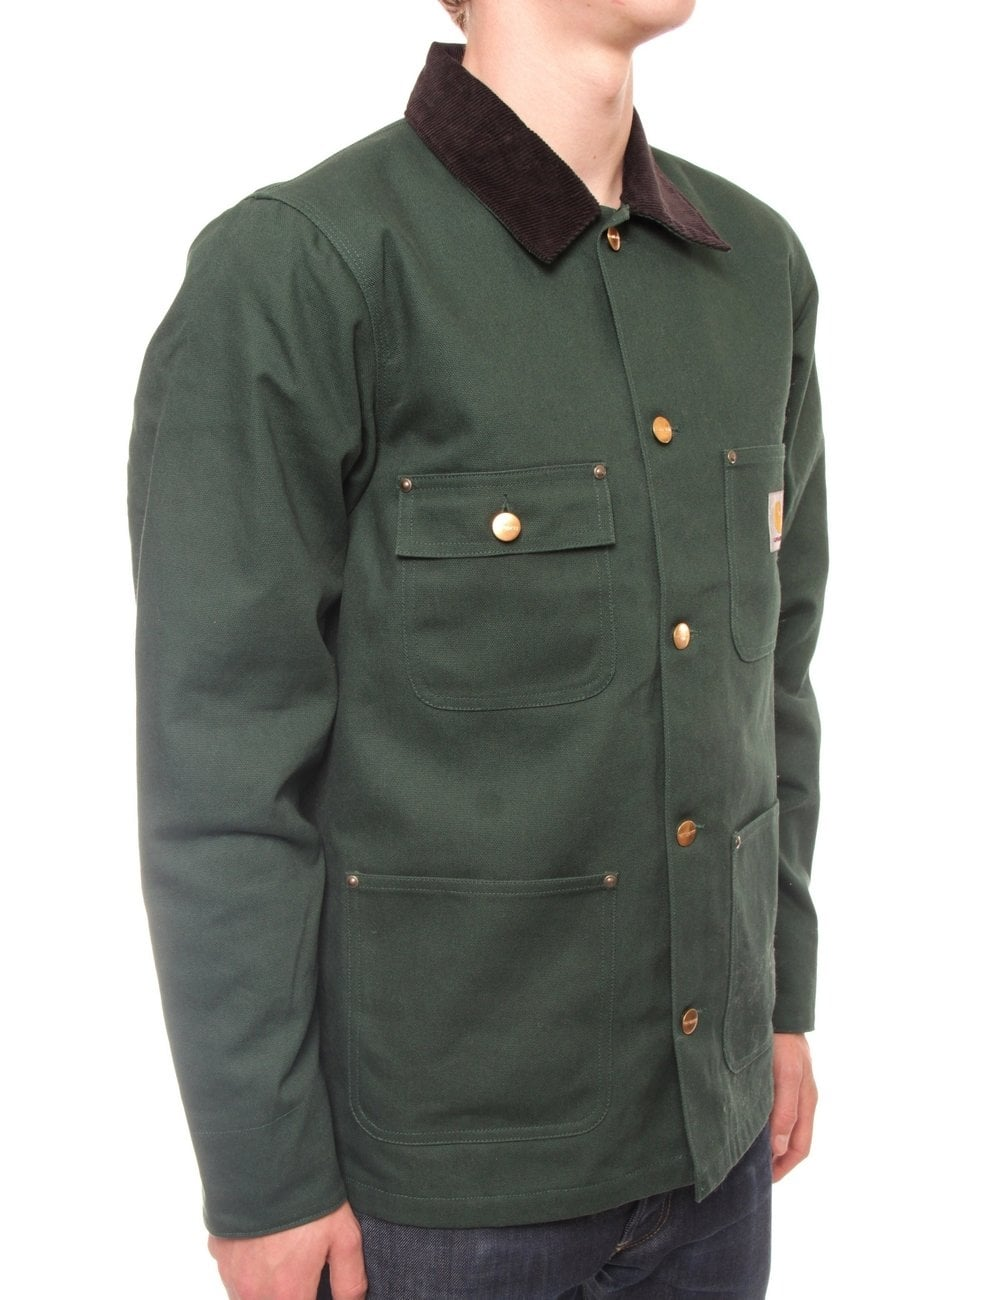 c52d0168db4 Carhartt WIP Chore Coat - Bottle Green Rigid - Clothing from Fat ...